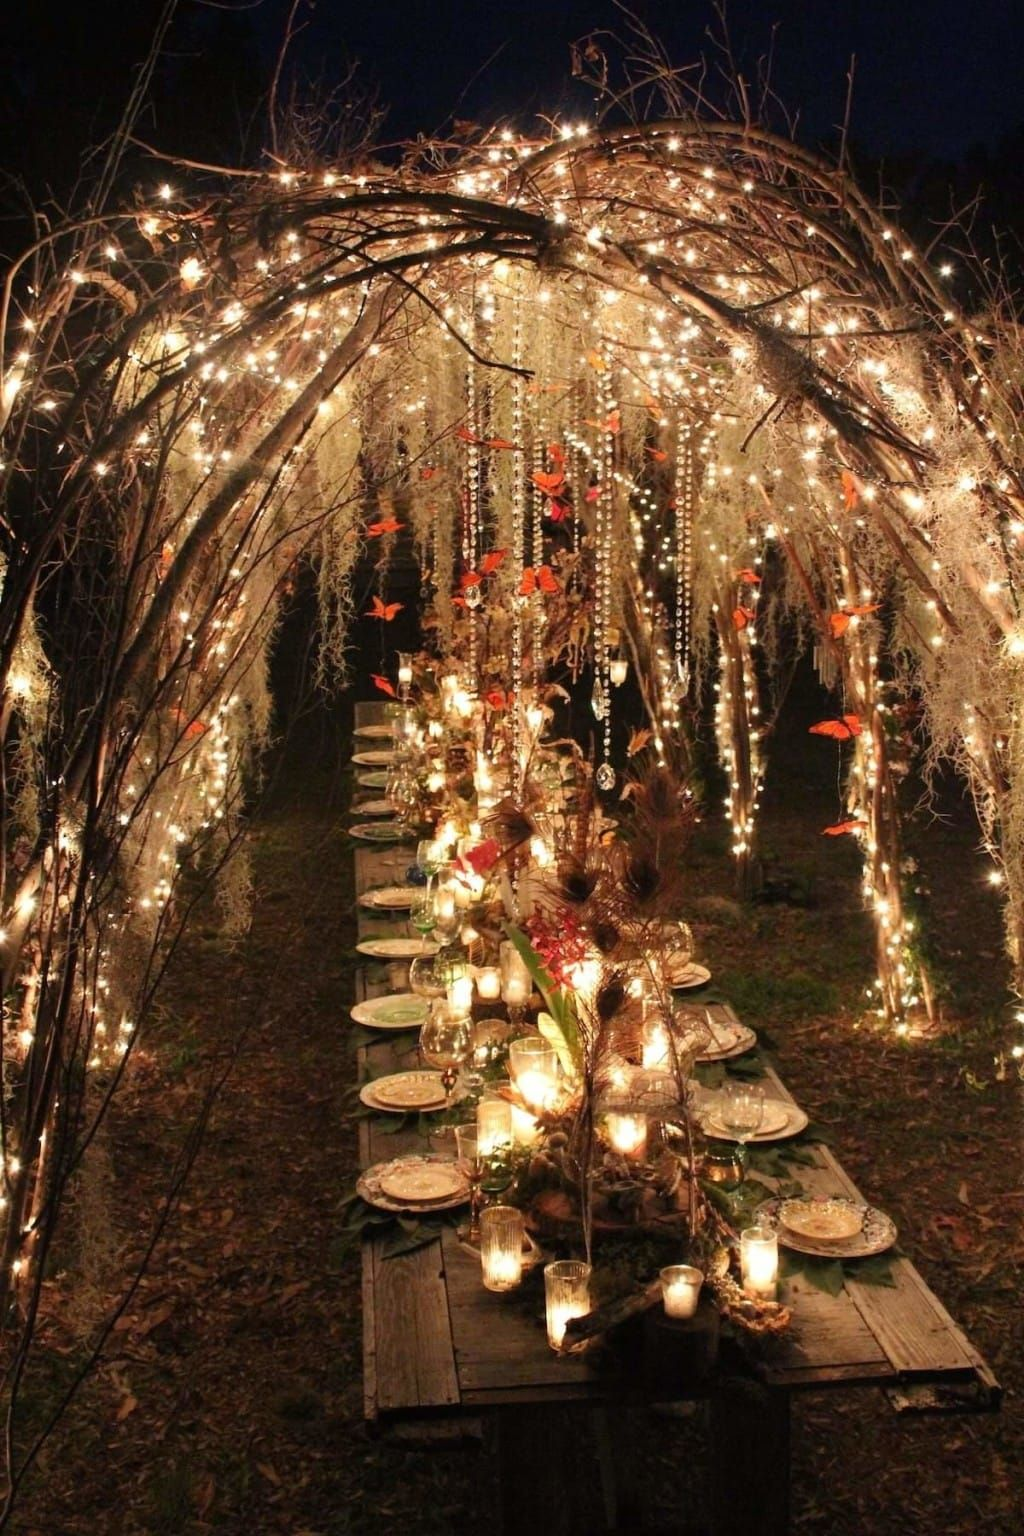 25 stunning wedding lighting ideas for your big day themed gorgeous lighting ideas for enchanted forest themed wedding party junglespirit Images